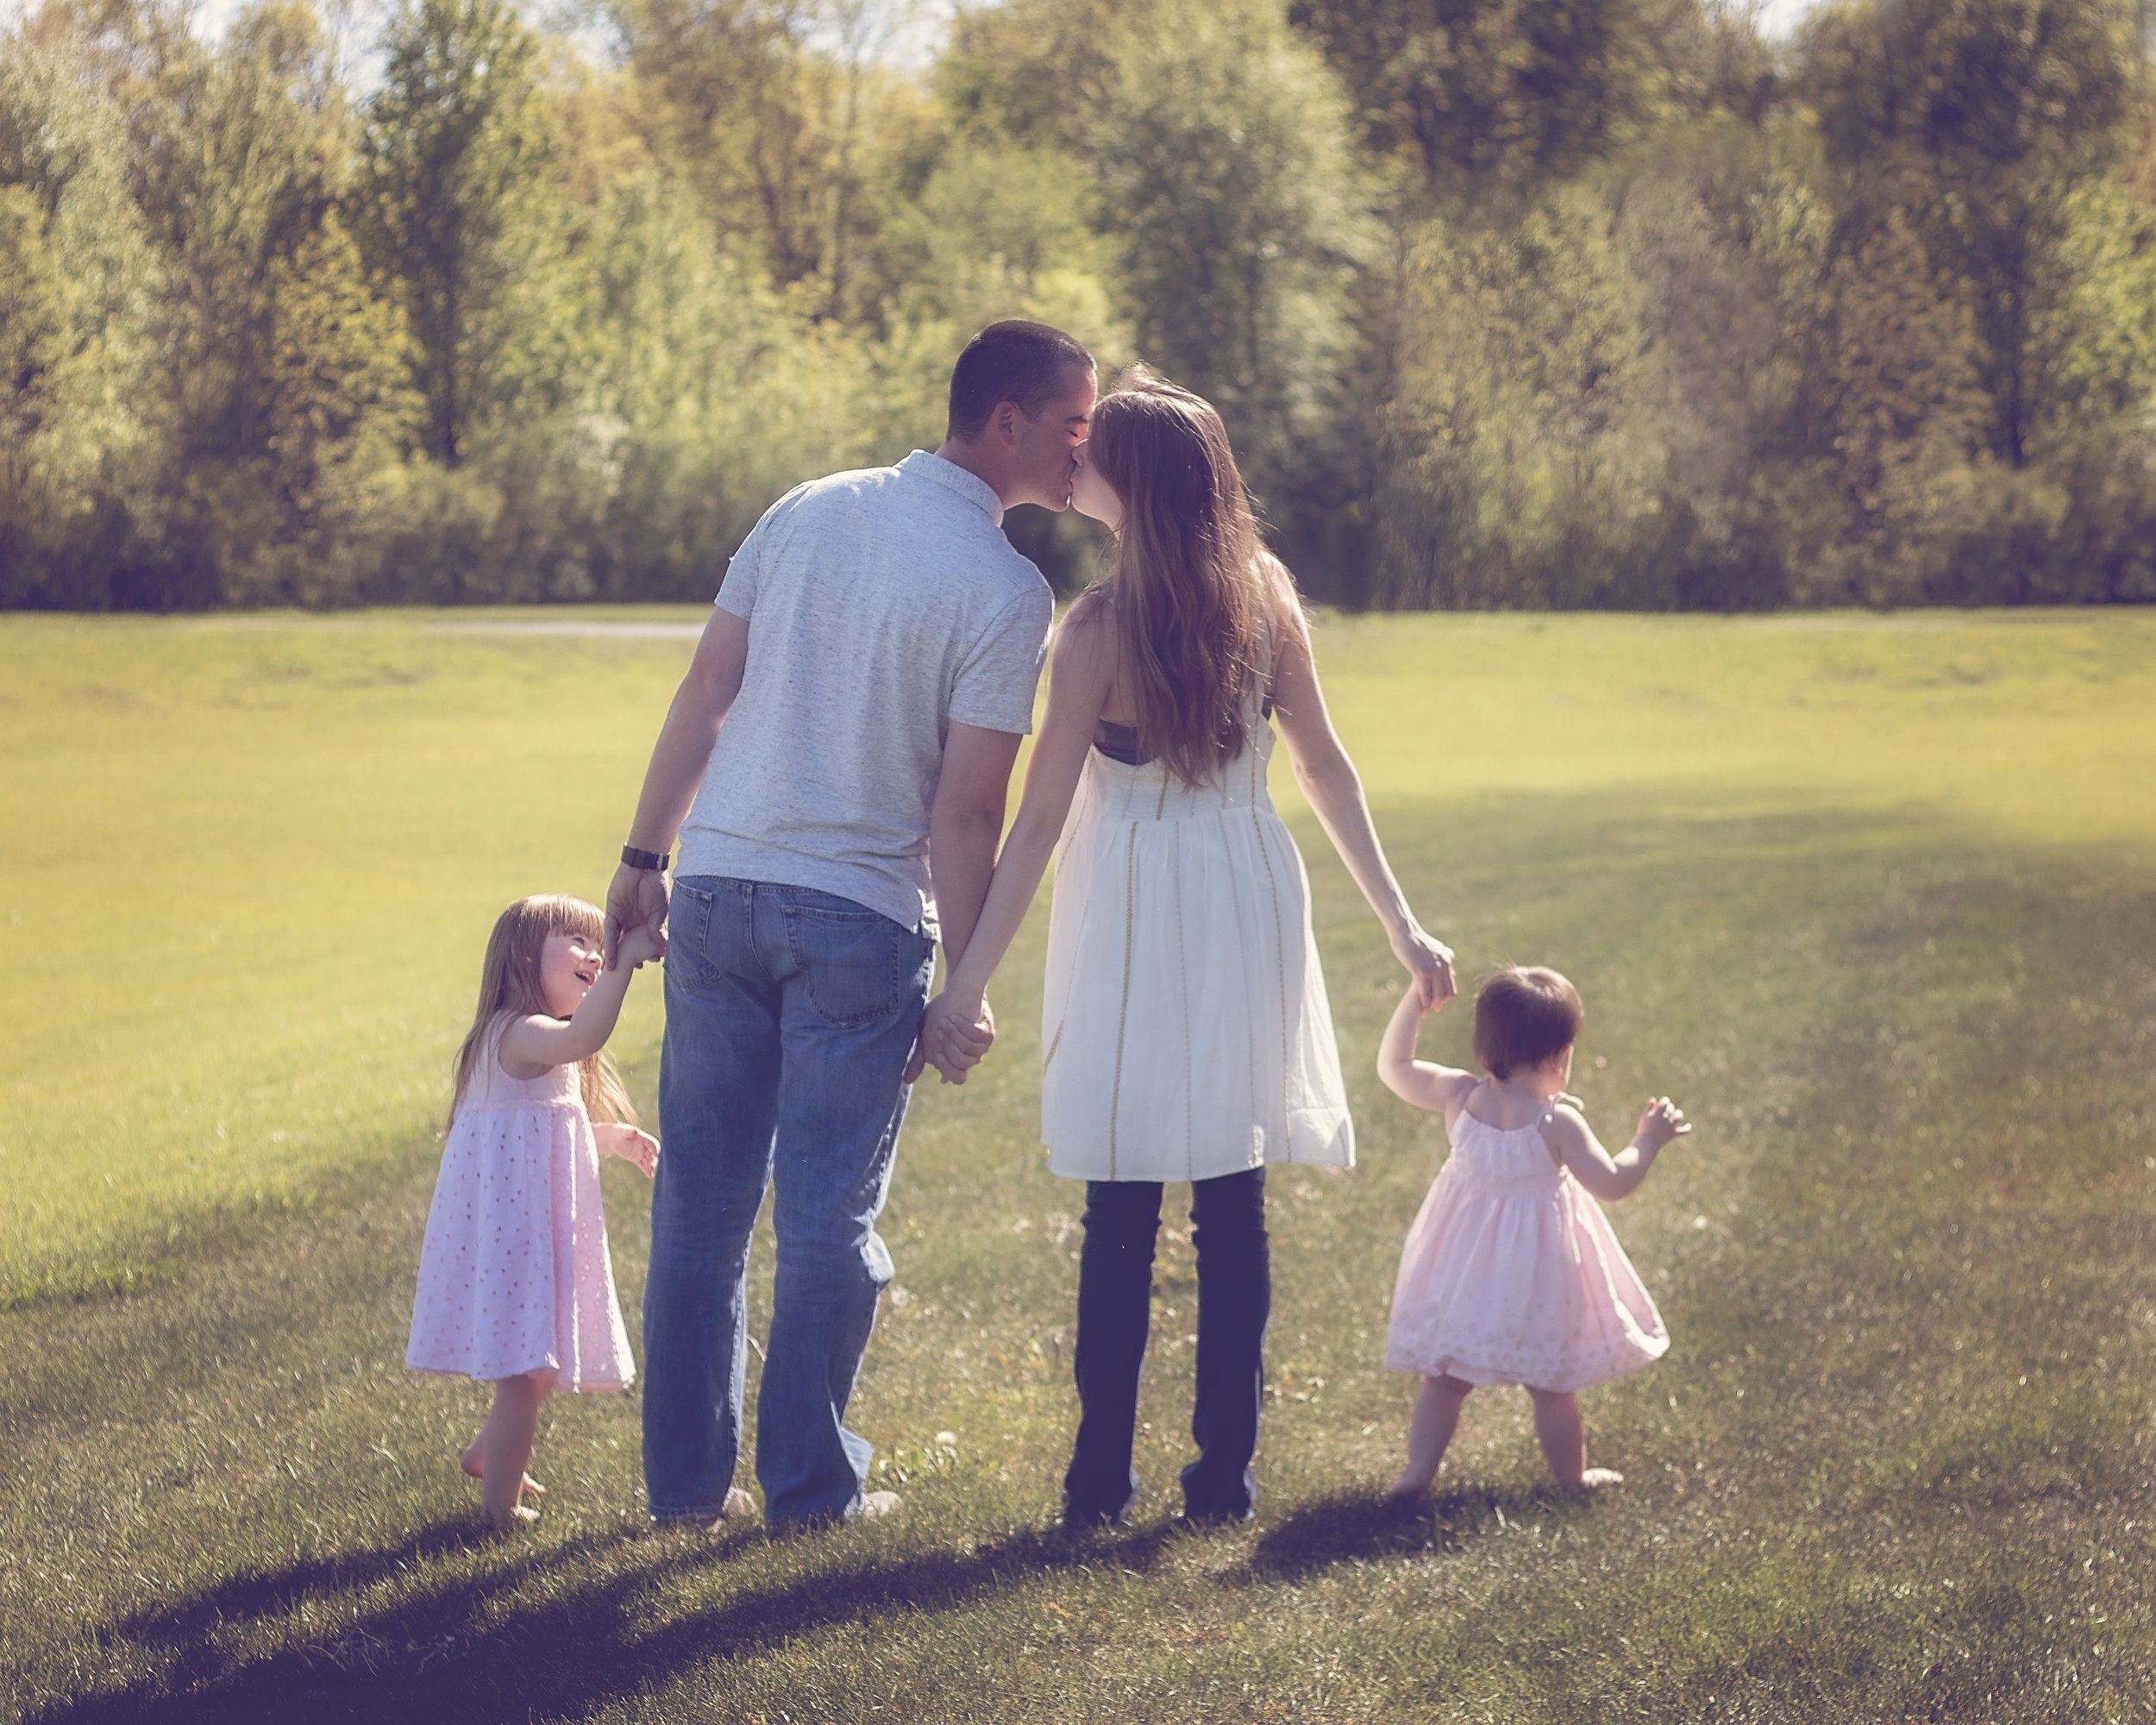 Family $210   Up to 6 family members included  10-15 high resolution images  Full retouch service included  Beautiful online gallery  Order professional prints and wall art directly from your gallery